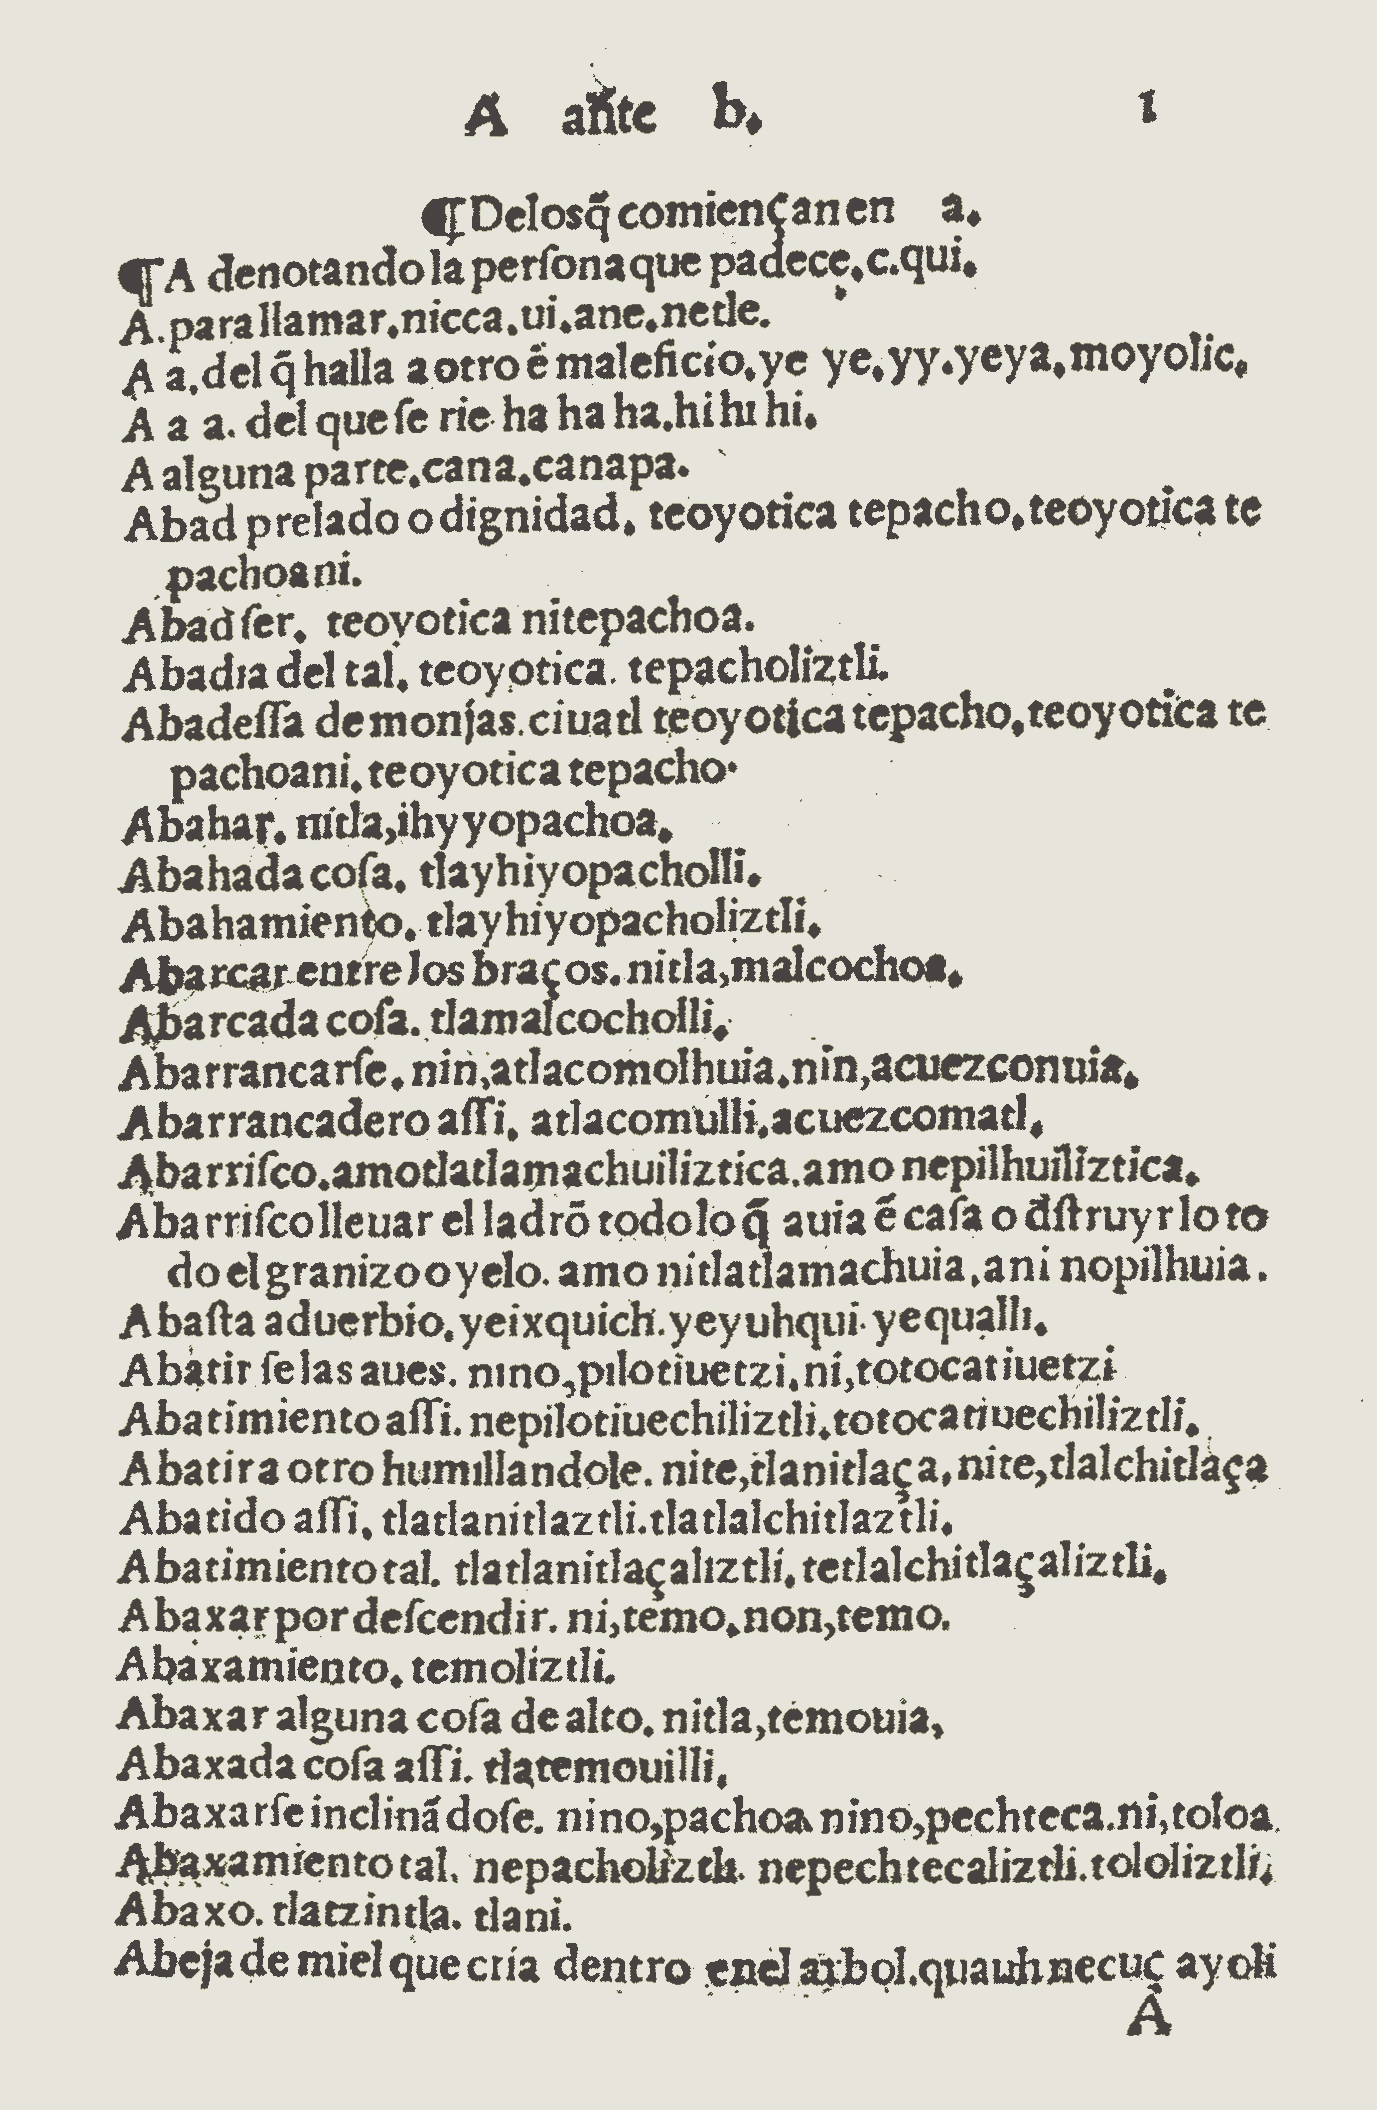 FIGURE 2. Folio 1r of Molina�s 1555 _Vocabulario_.